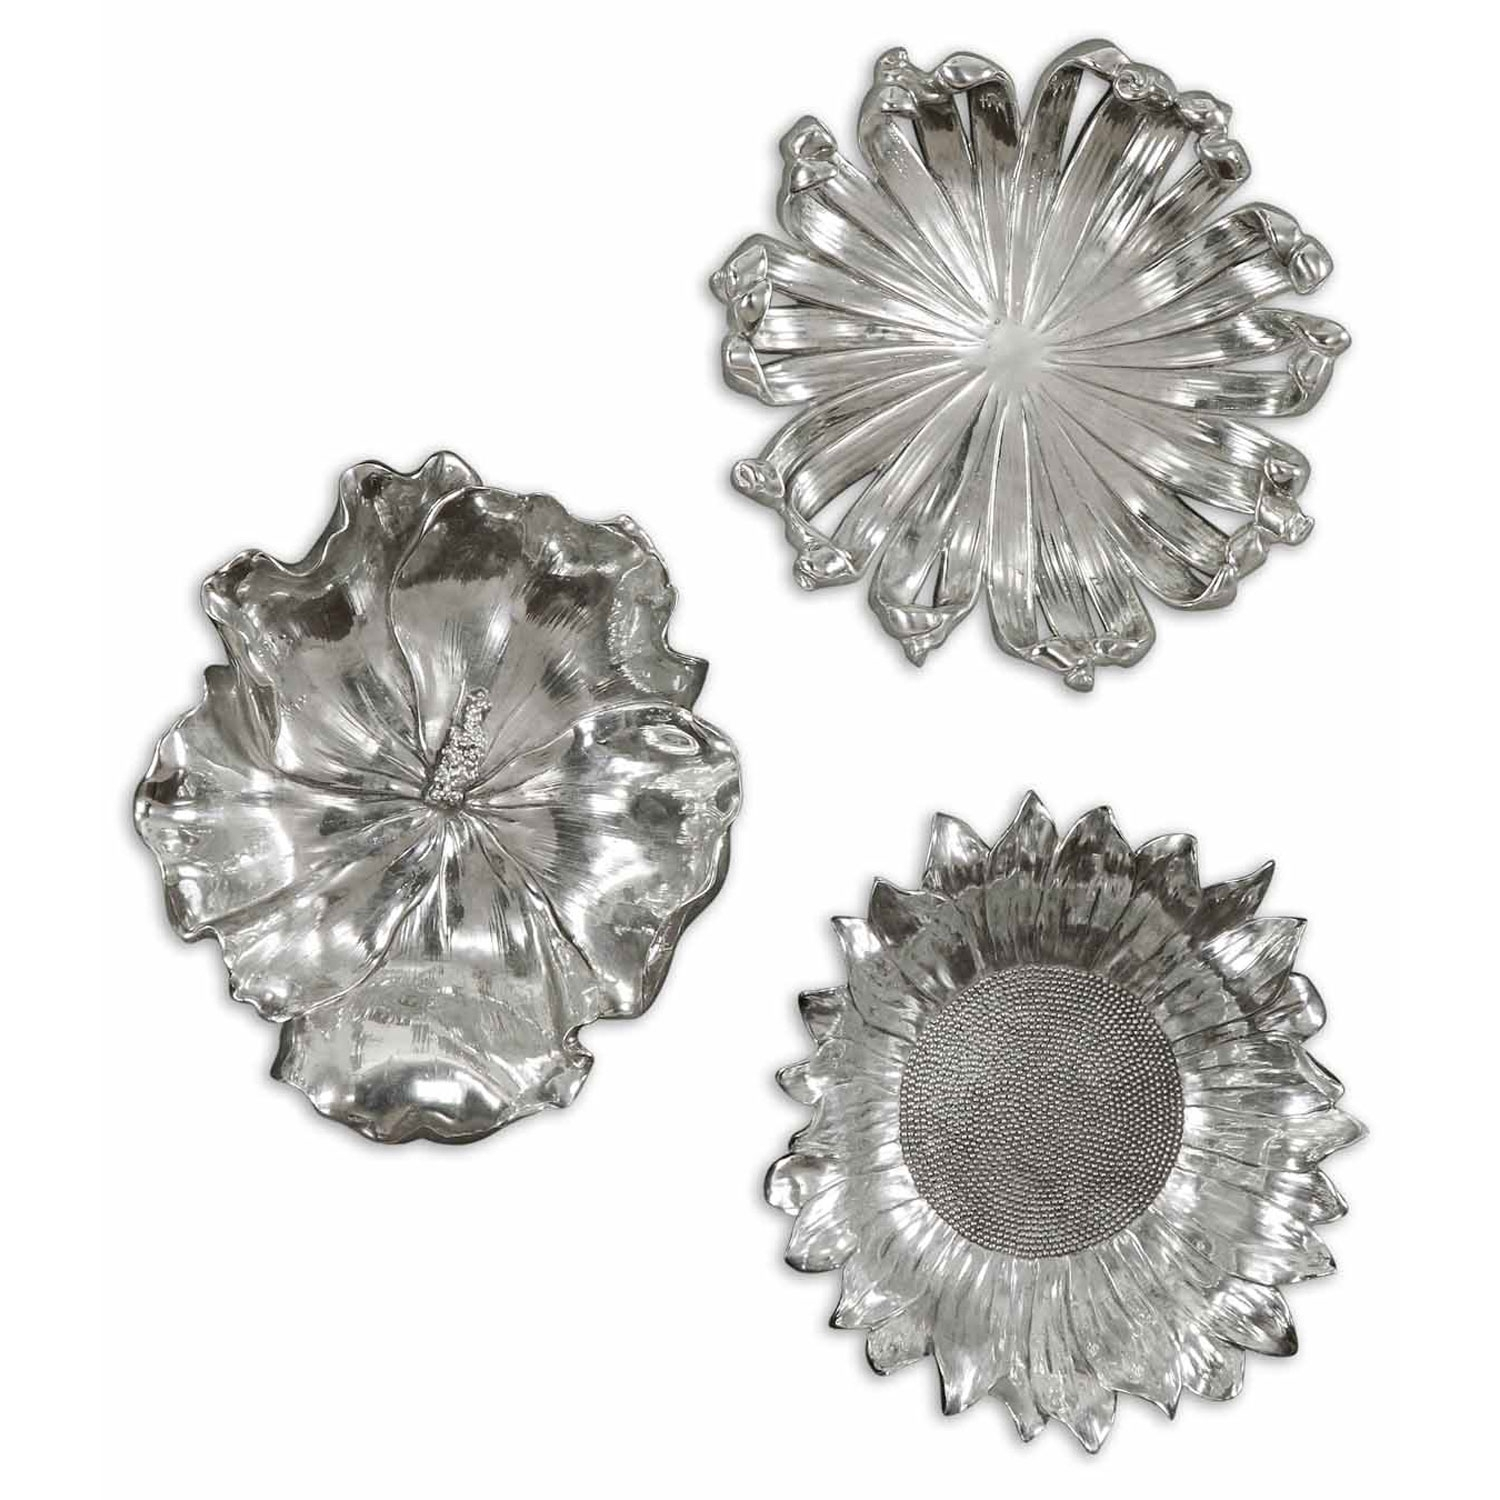 Uttermost Silver Flowers Metal Wall Art, Set Of Three 08503 | Bellacor With Regard To Most Current Metal Flowers Wall Art (View 12 of 20)